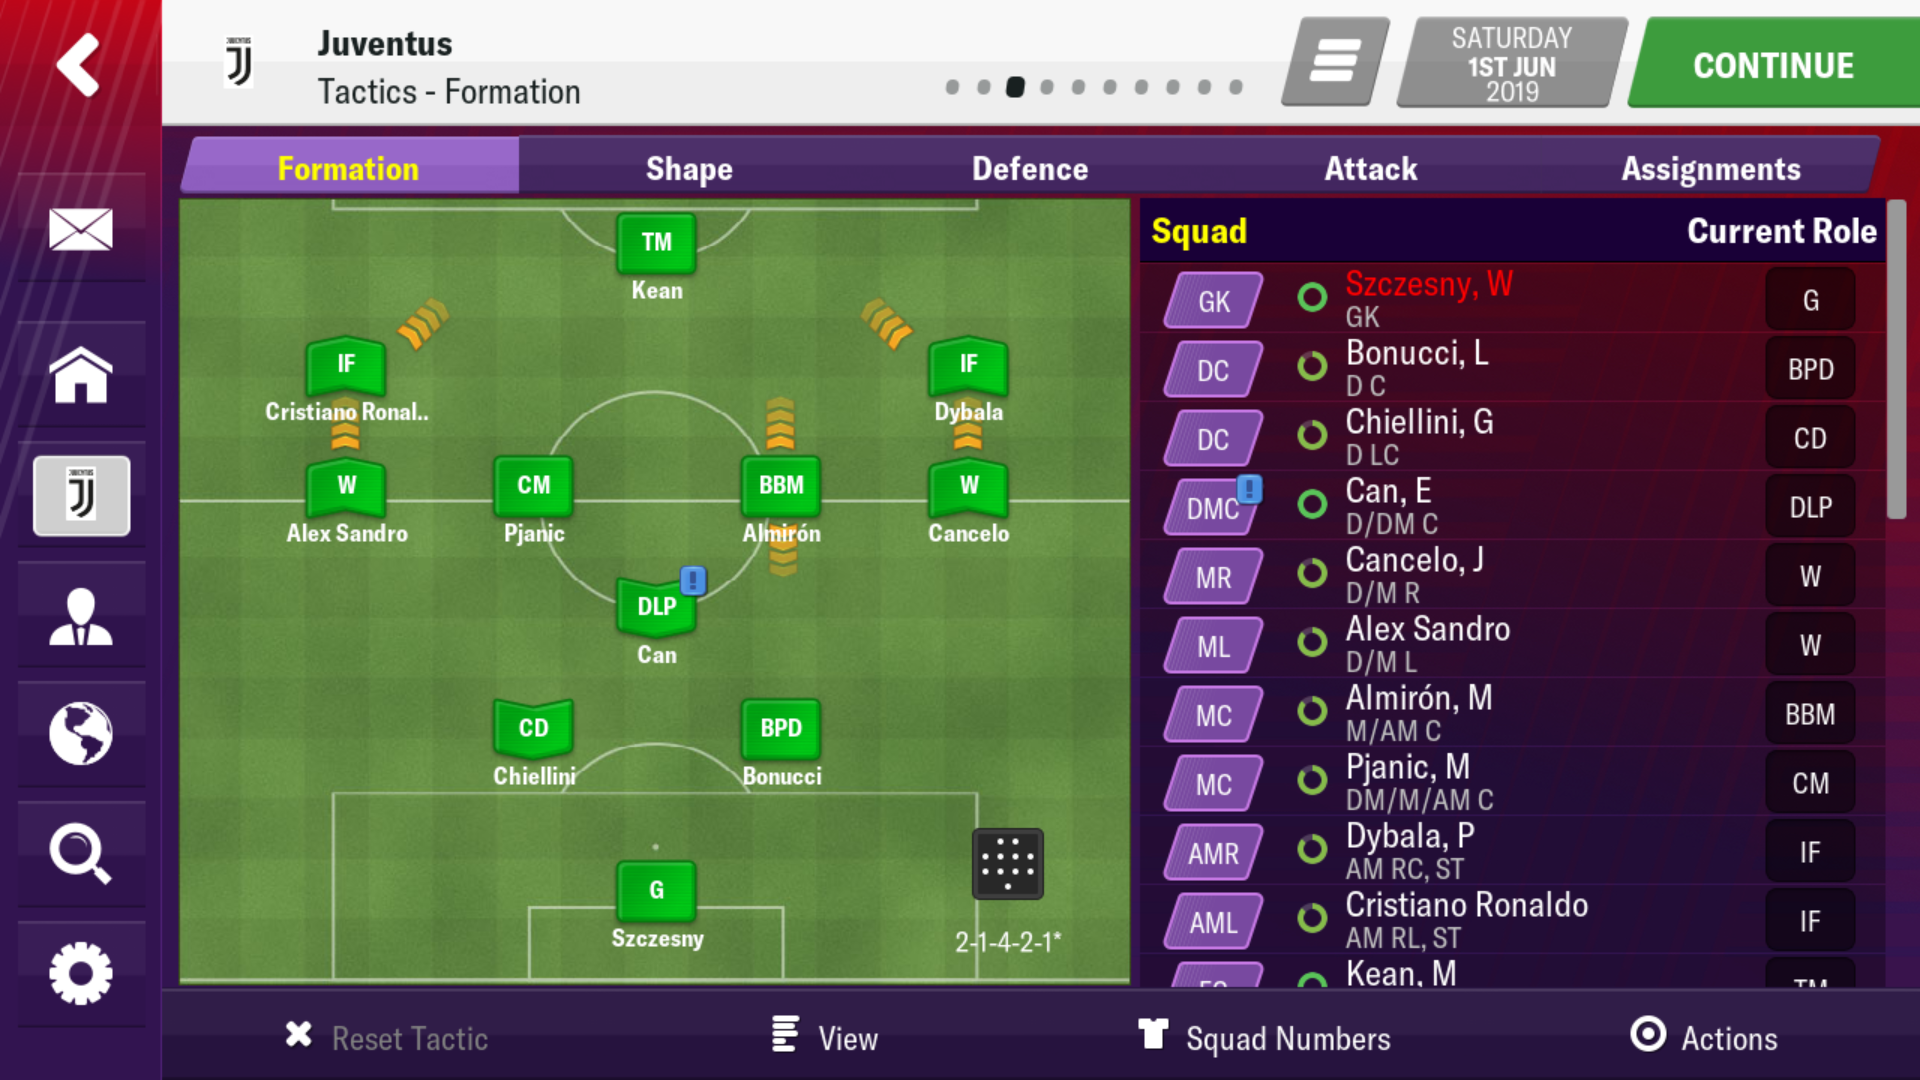 Lynch S Eme Juventus Ucl Comeback Tactic Football Manager 2019 Mobile Fmm Vibe